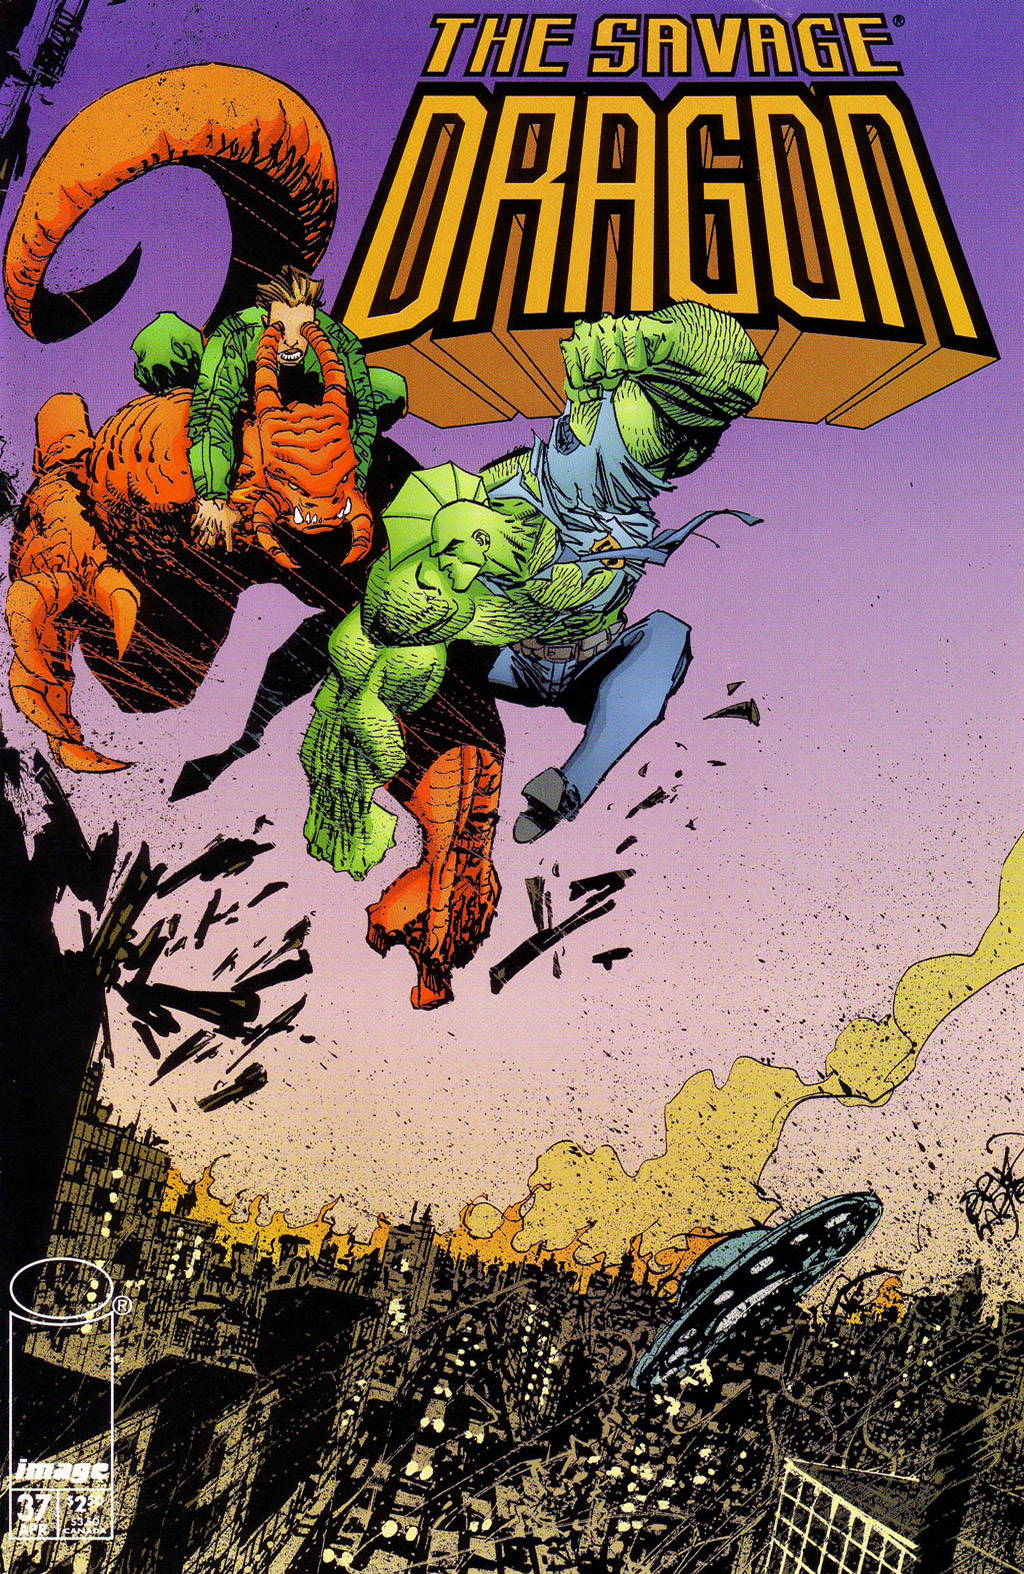 Cover Savage Dragon Vol.2 #37